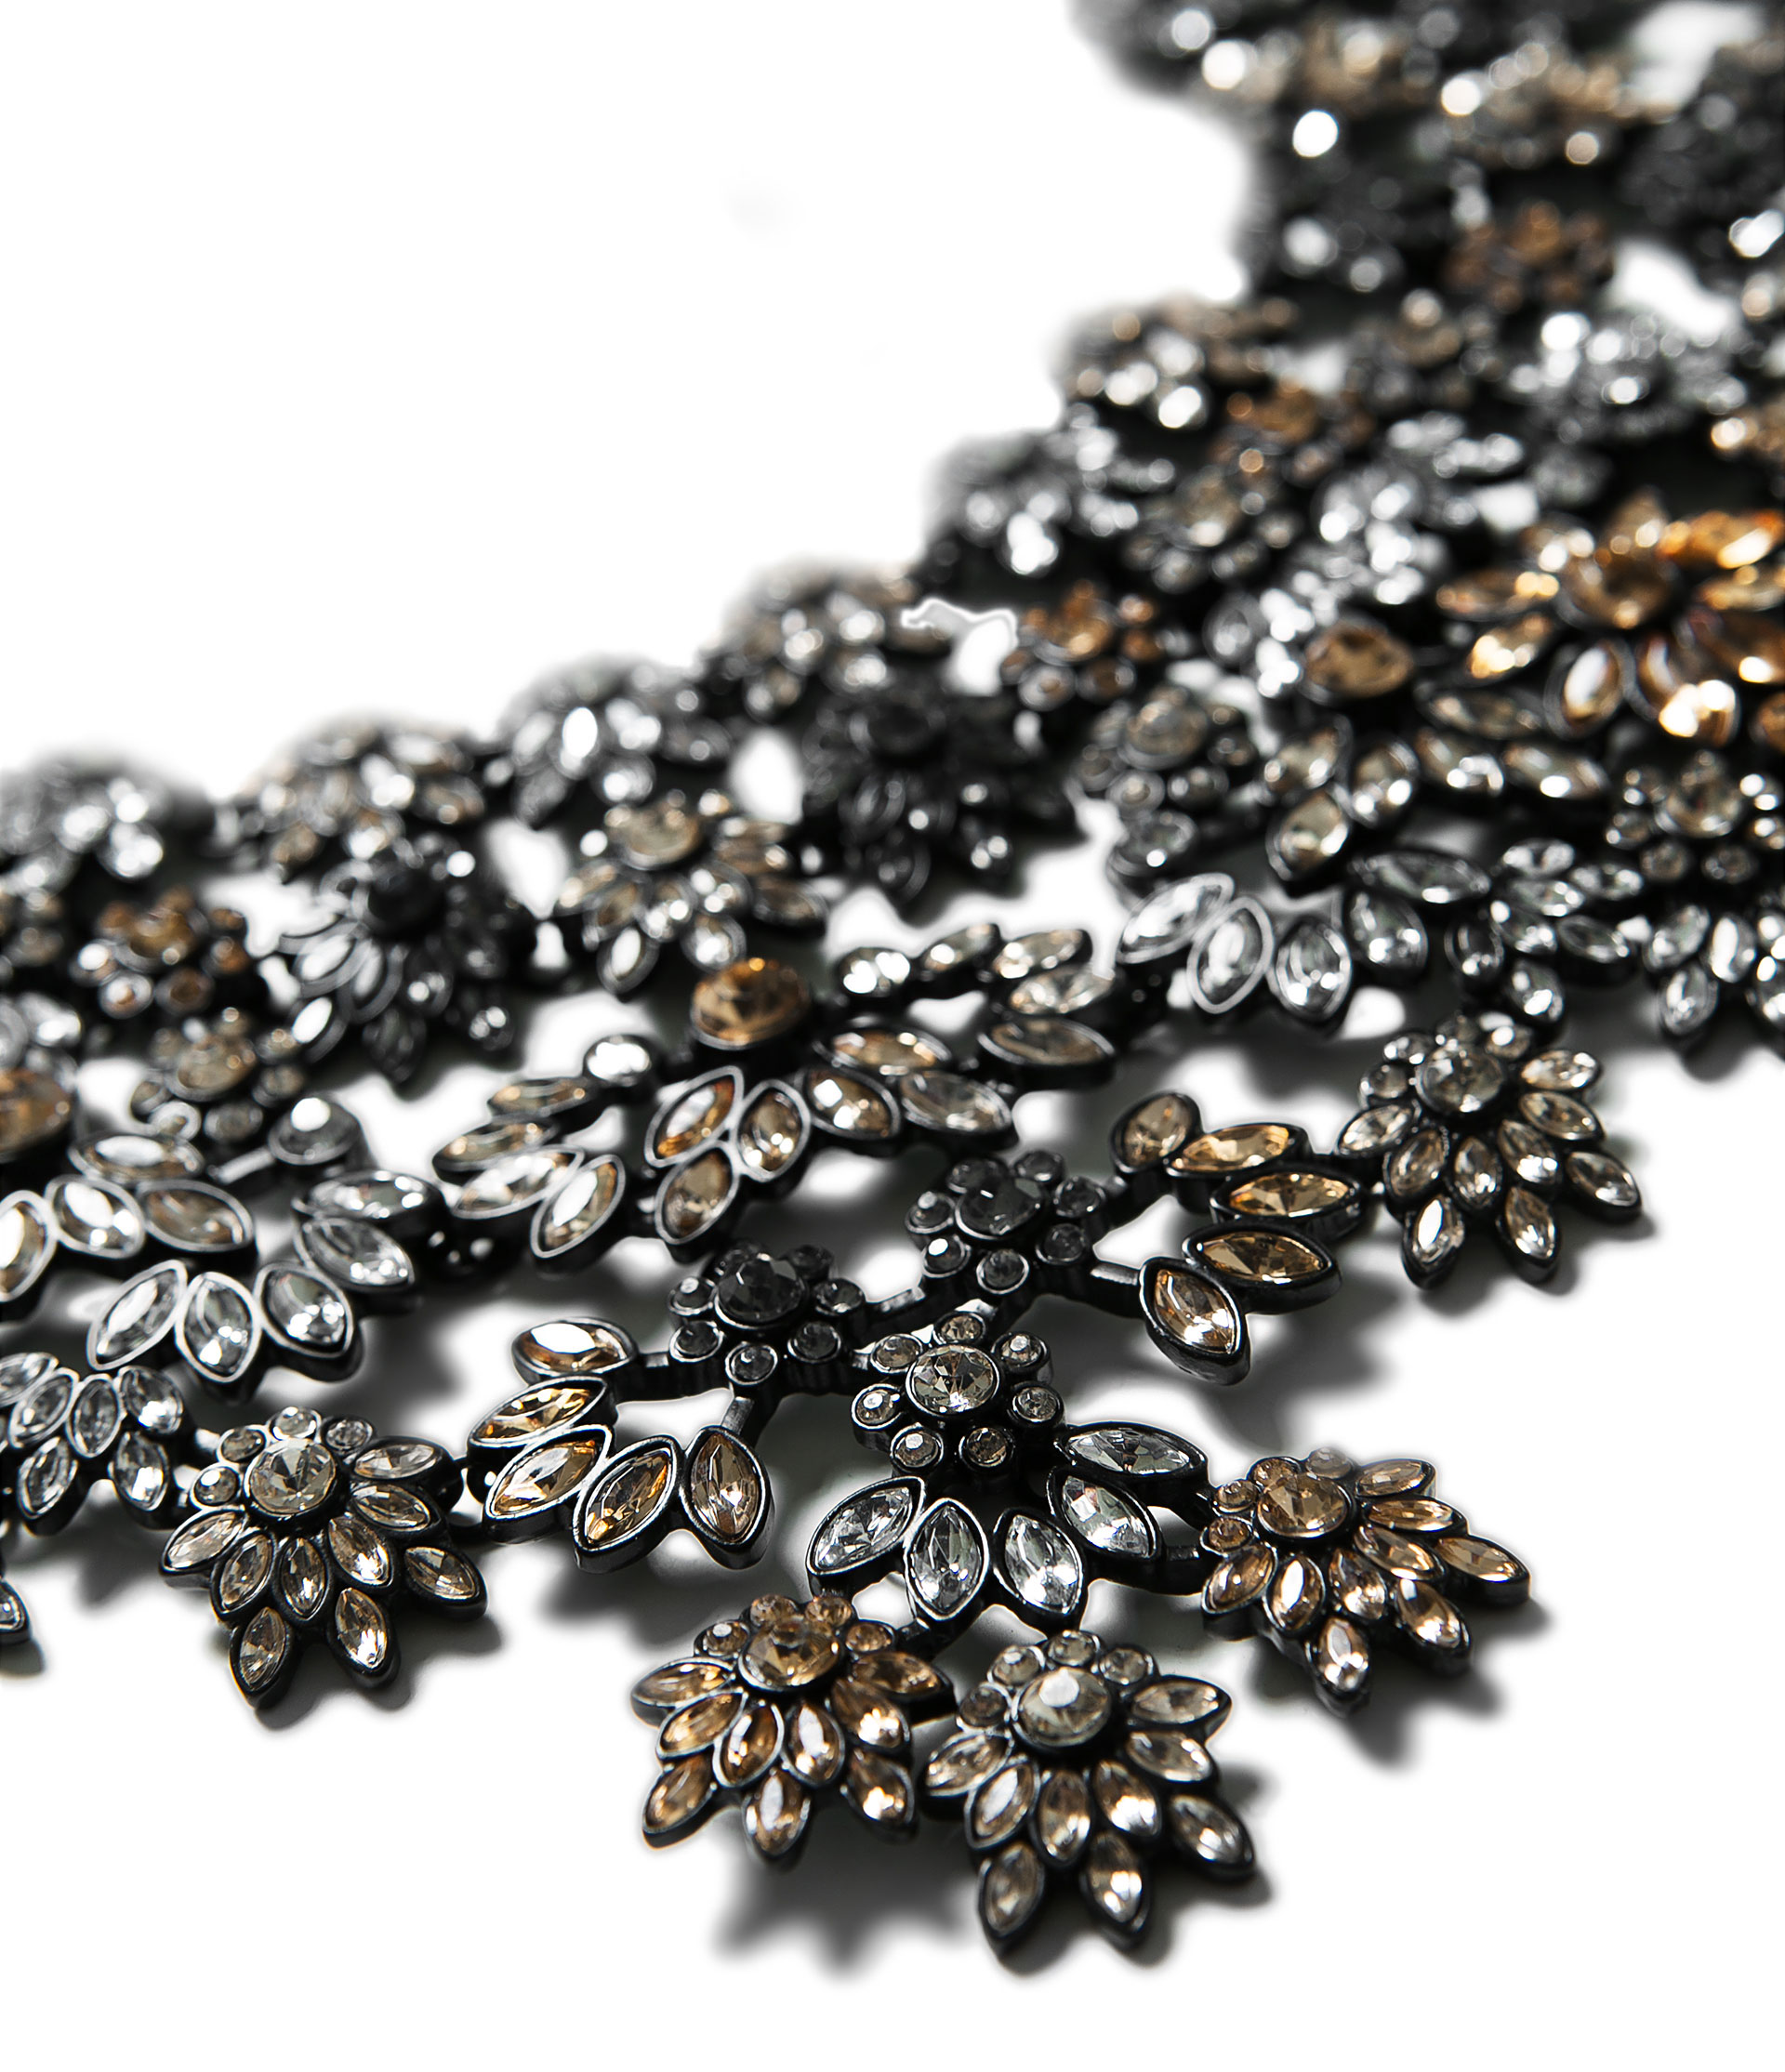 Zara Floral Gemstone Necklace (Image: lyst.com)